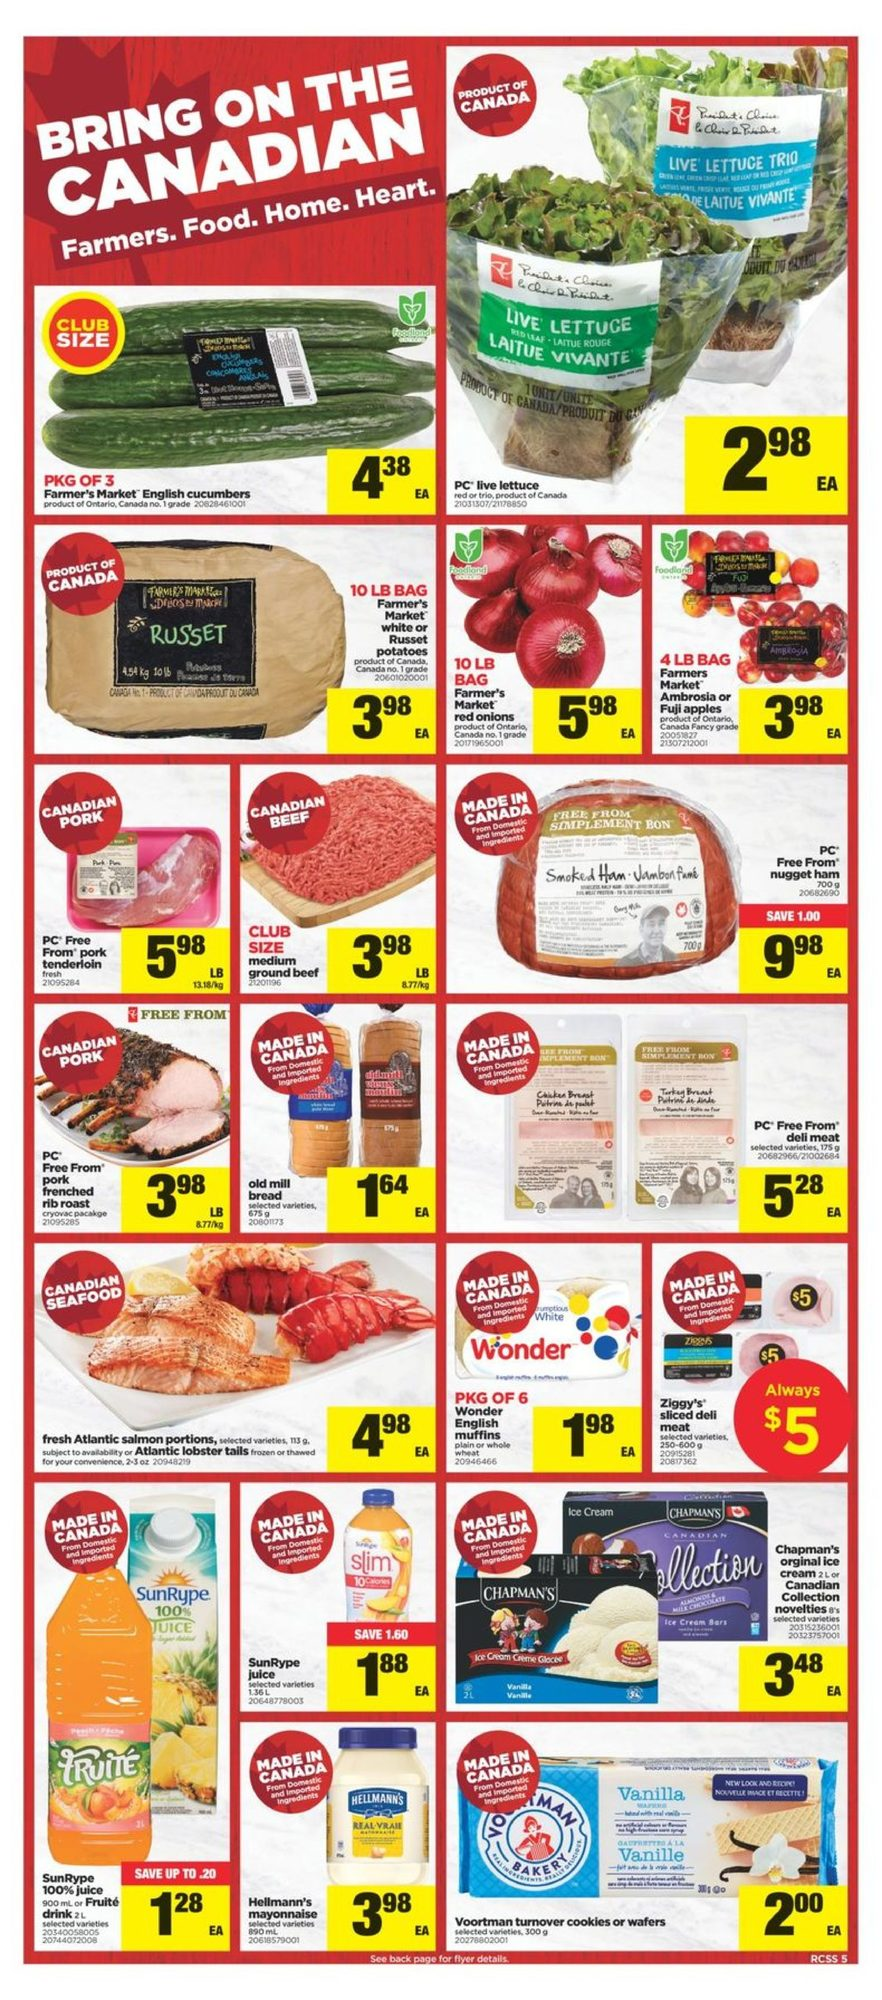 Real Canadian Superstore - Weekly Flyer Specials - Page 5